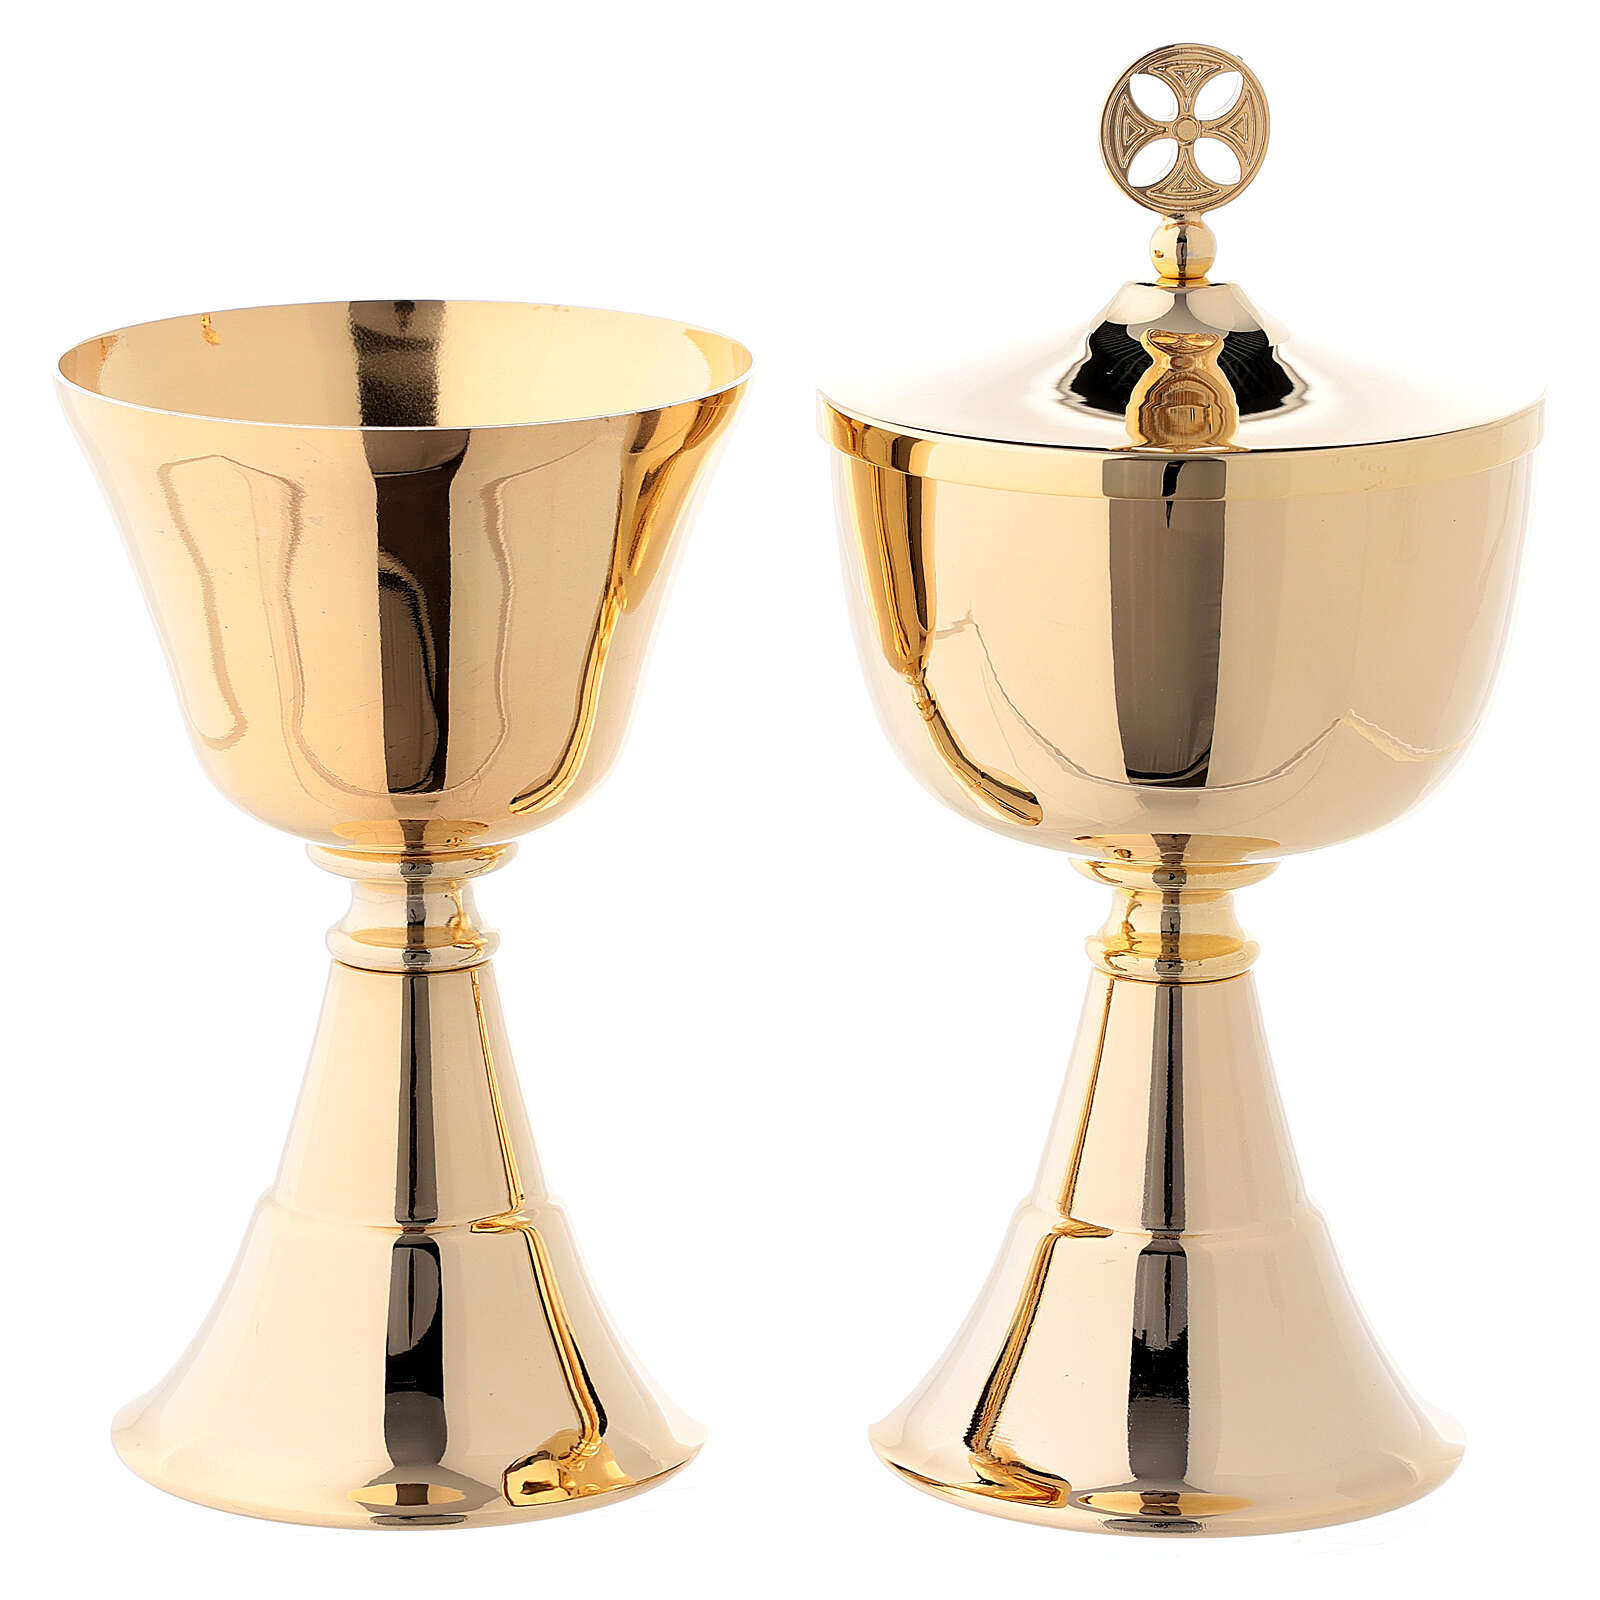 Simple chalice and ciborium for traveling 24-karat gold plated brass 4